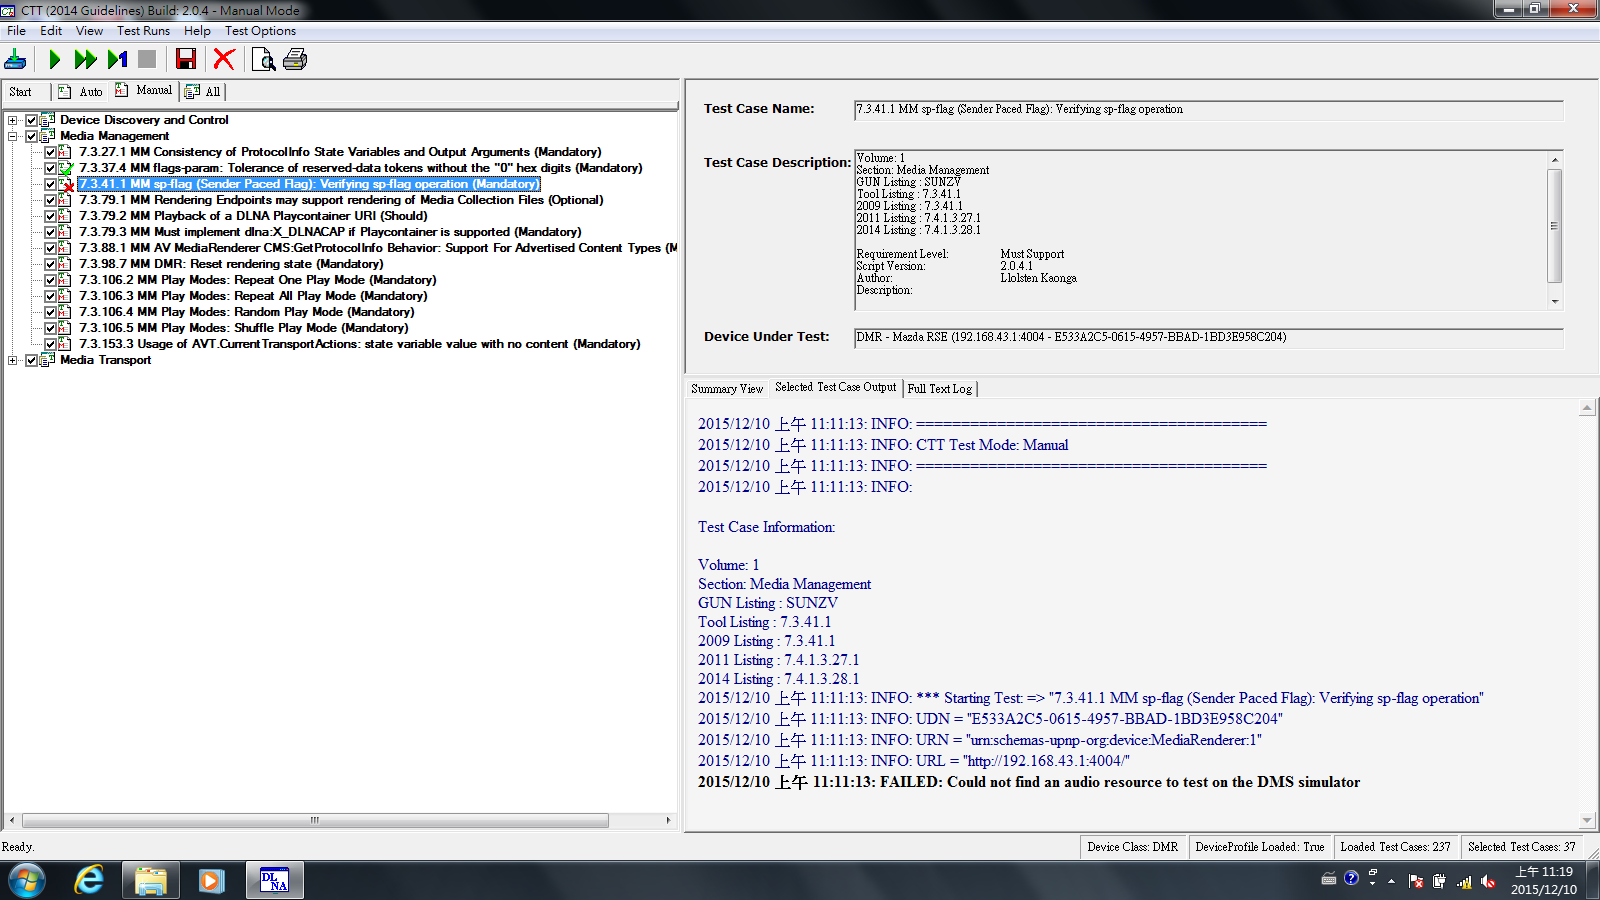 DLNA CTT Tool Could Not Find An Audio Resource To Test On The DMS Simulator